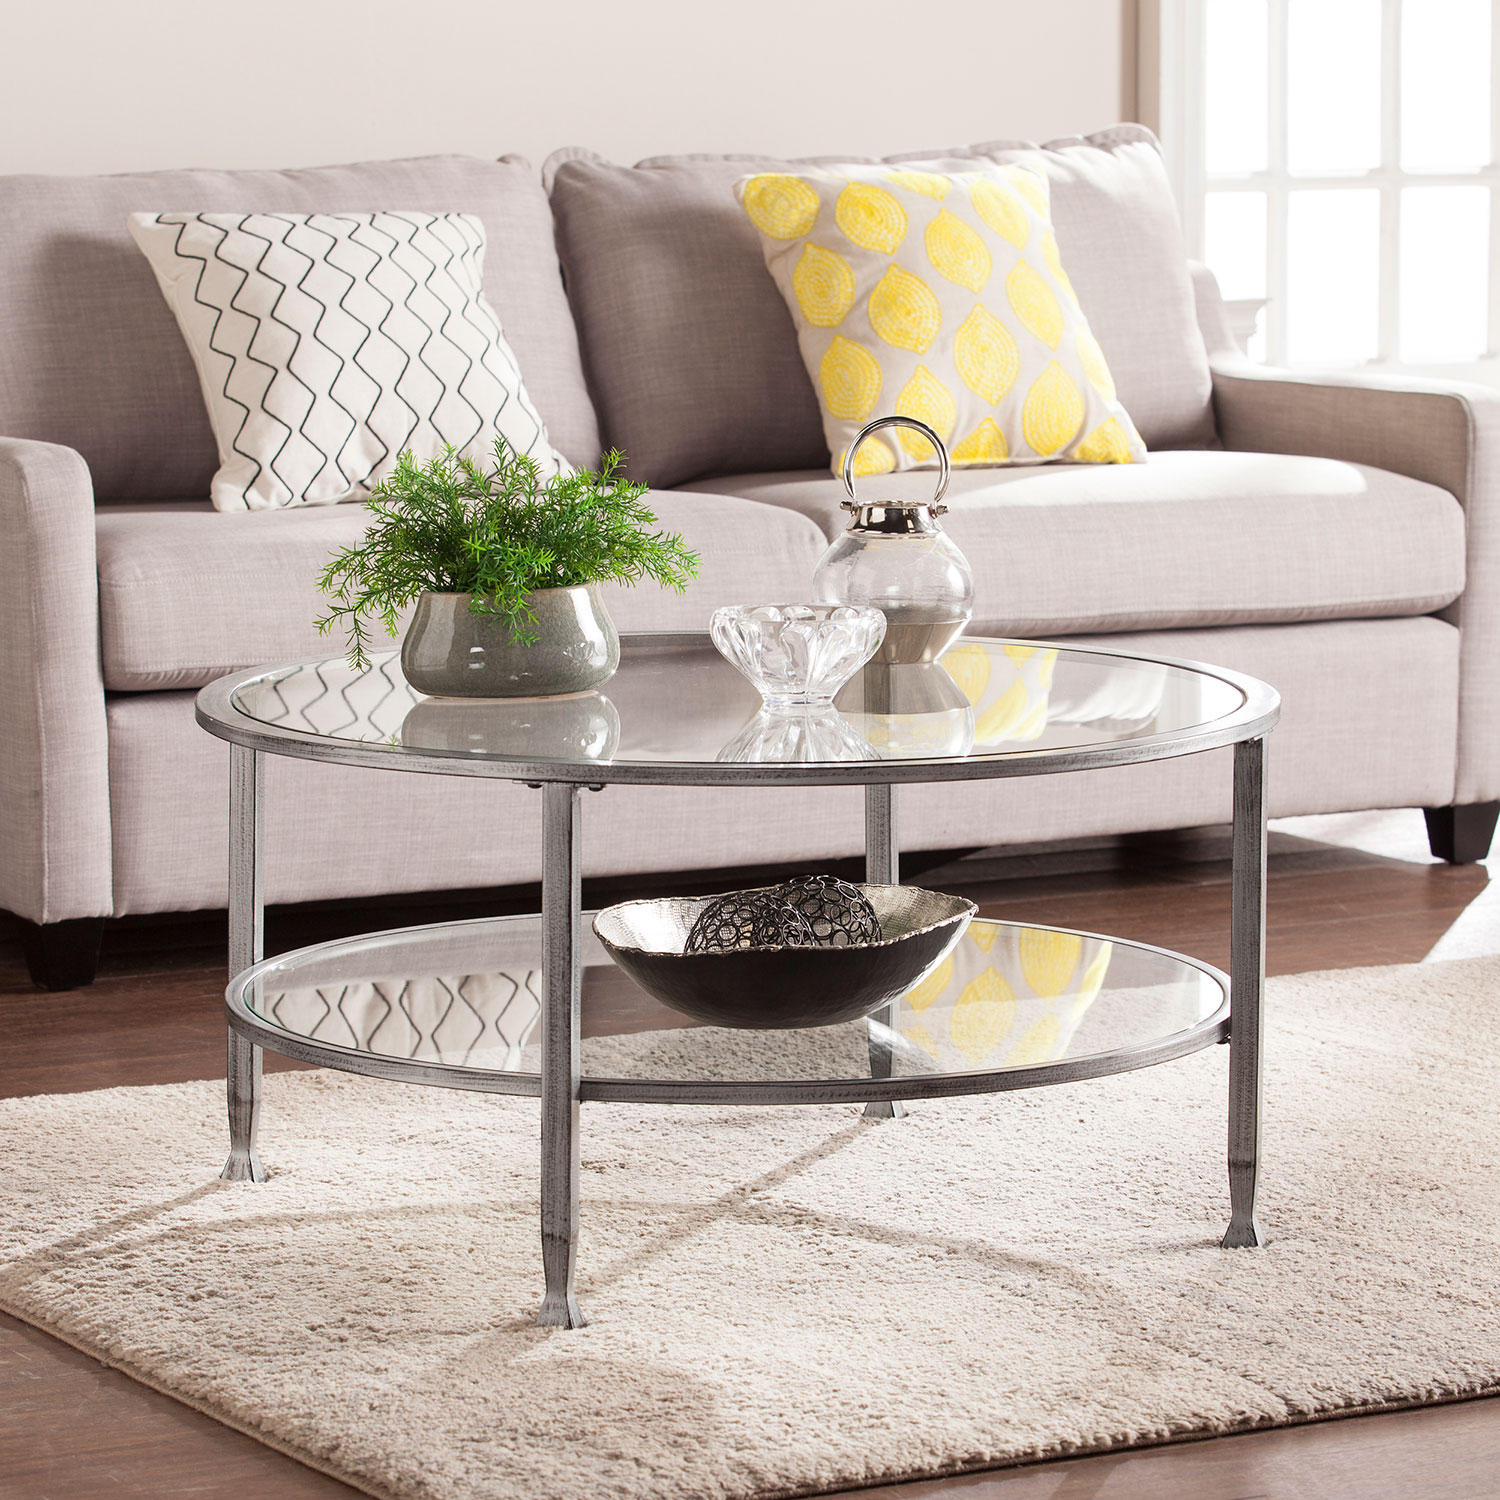 SEI Bakerton Round Cocktail Table (Silver)